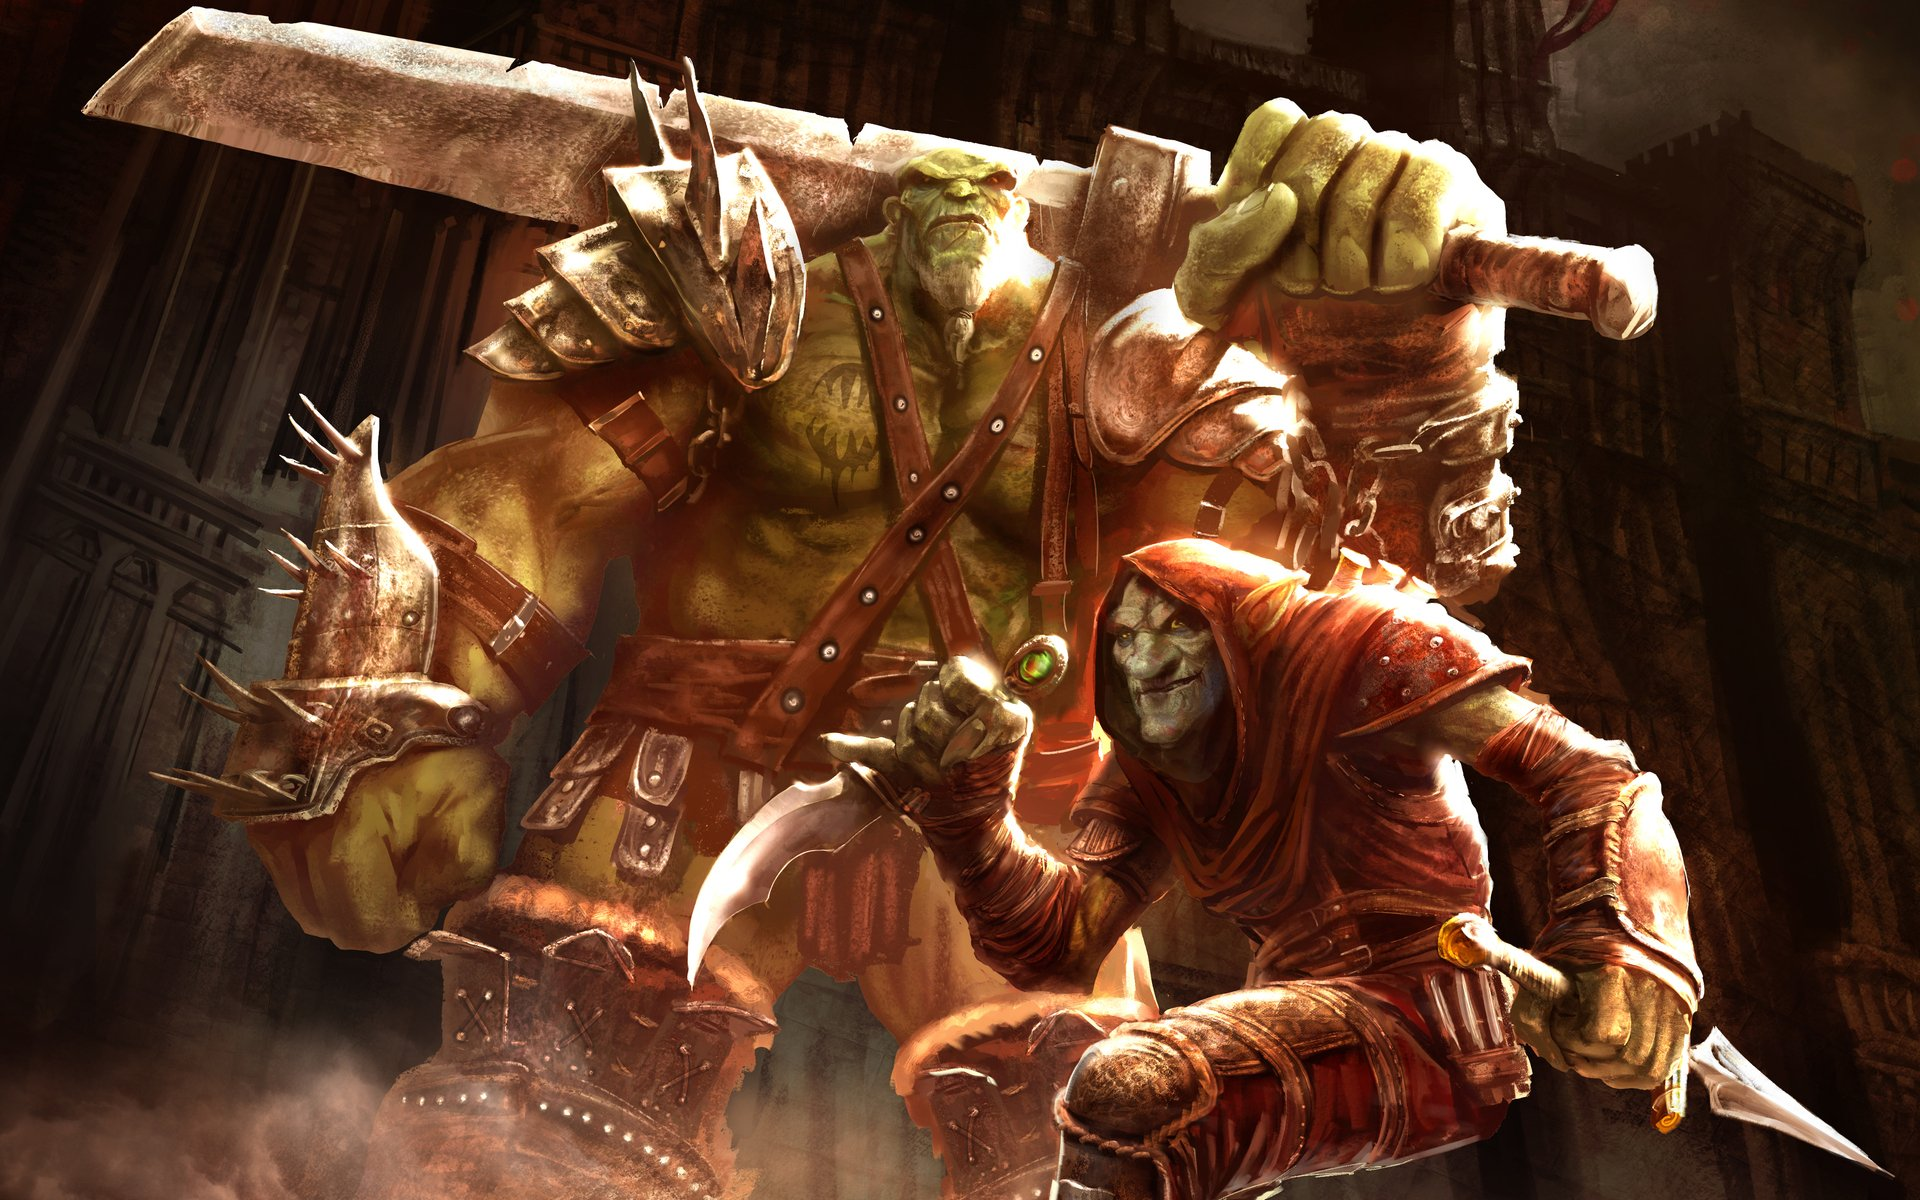 Of Orcs And Men games video games fantasy monsters 1920x1200